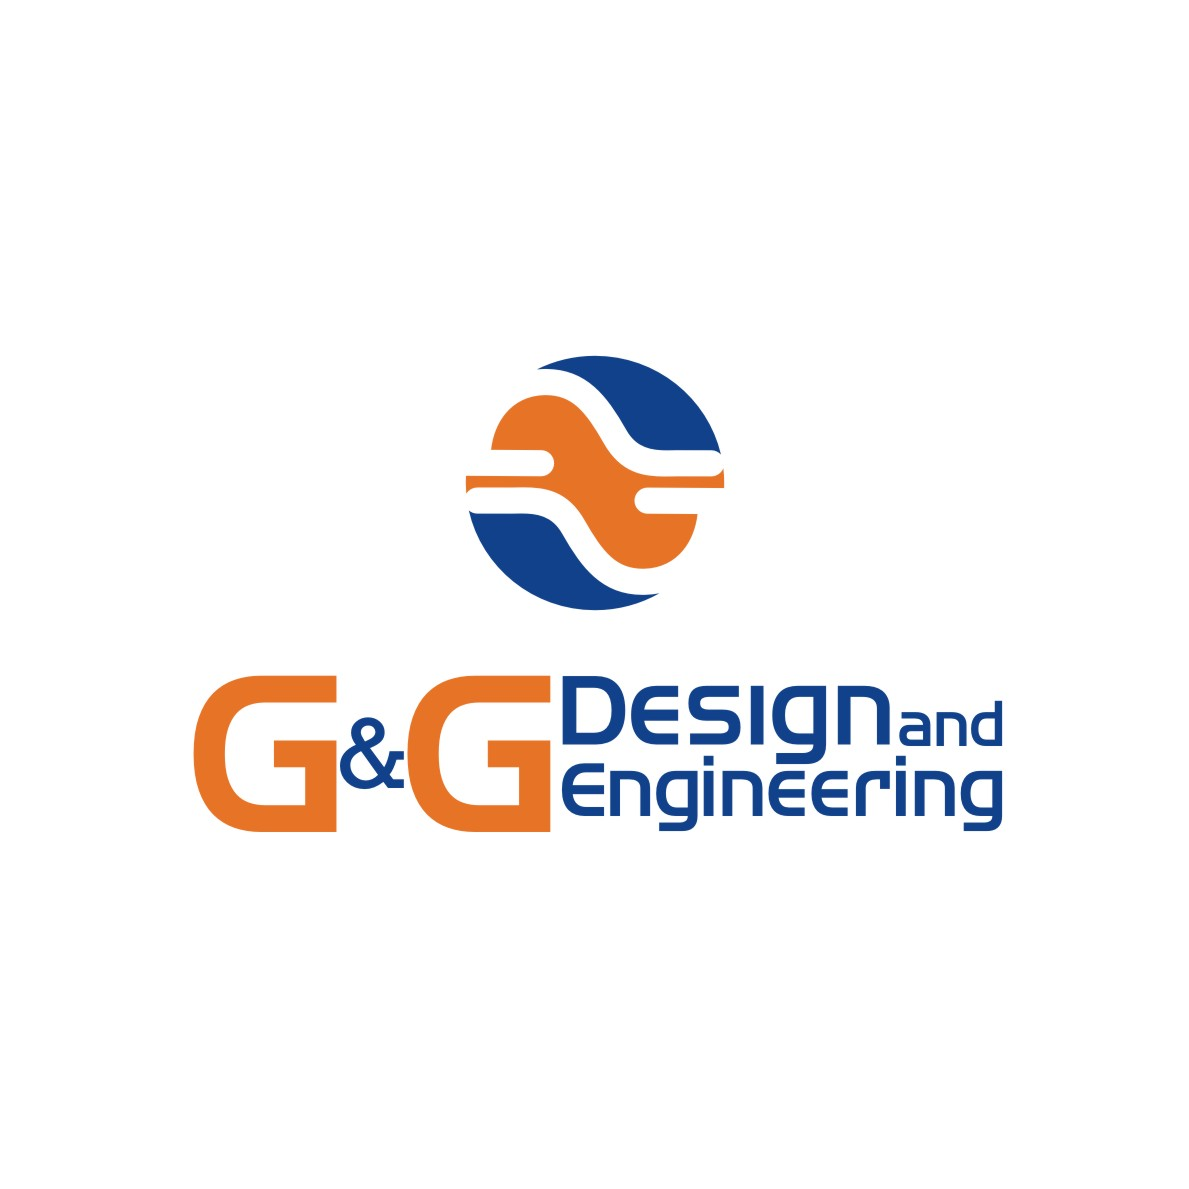 Logo Design by jalal - Entry No. 84 in the Logo Design Contest Creative Logo Design for G&G Design and Engineering, LLC.